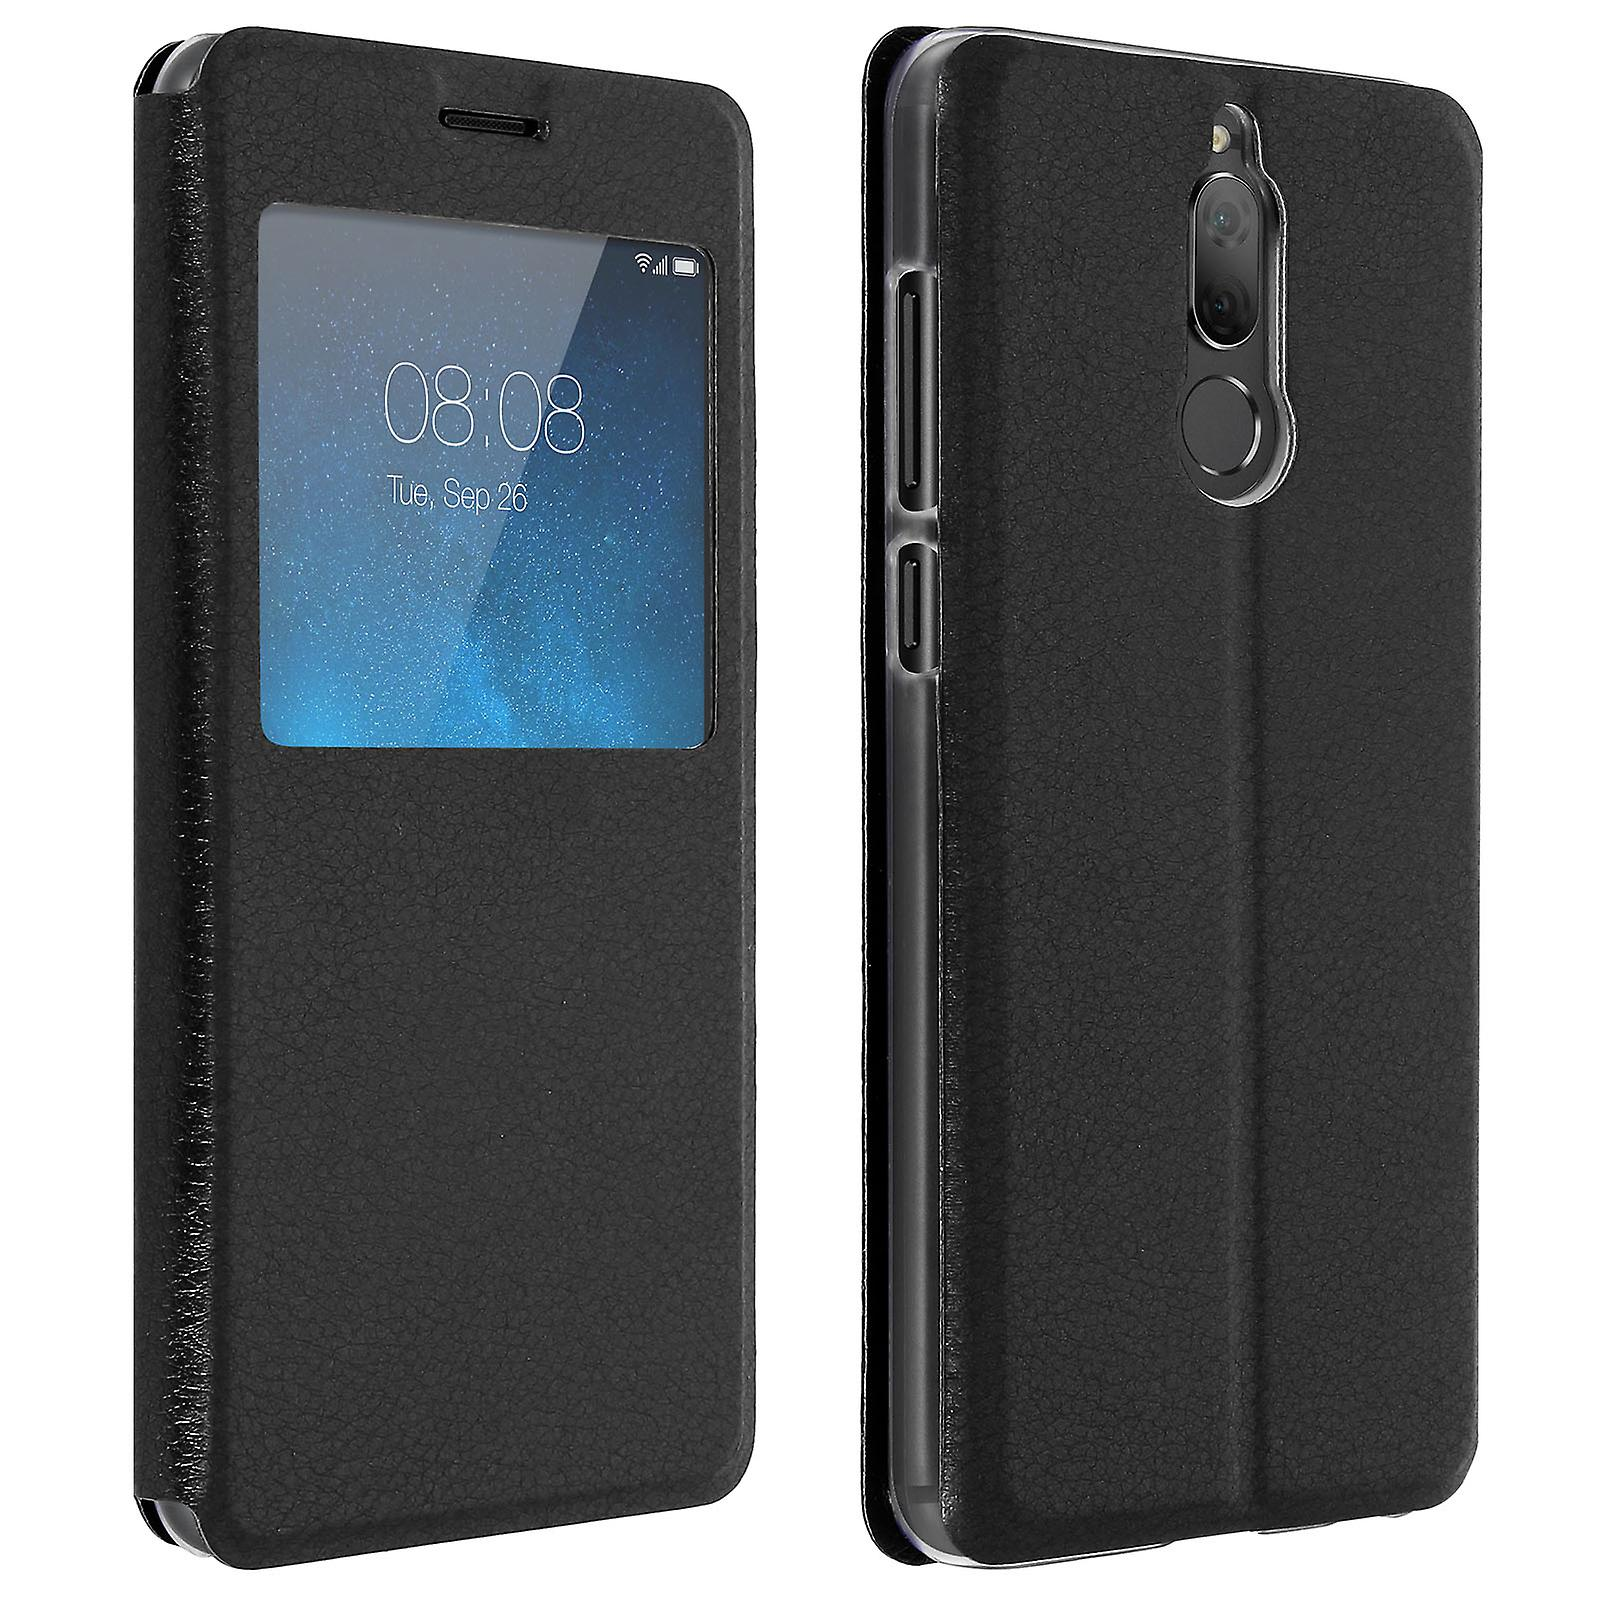 wholesale dealer f9be5 dd24e Smart view window flip case for Huawei Mate 10 Lite, slim cover - Black